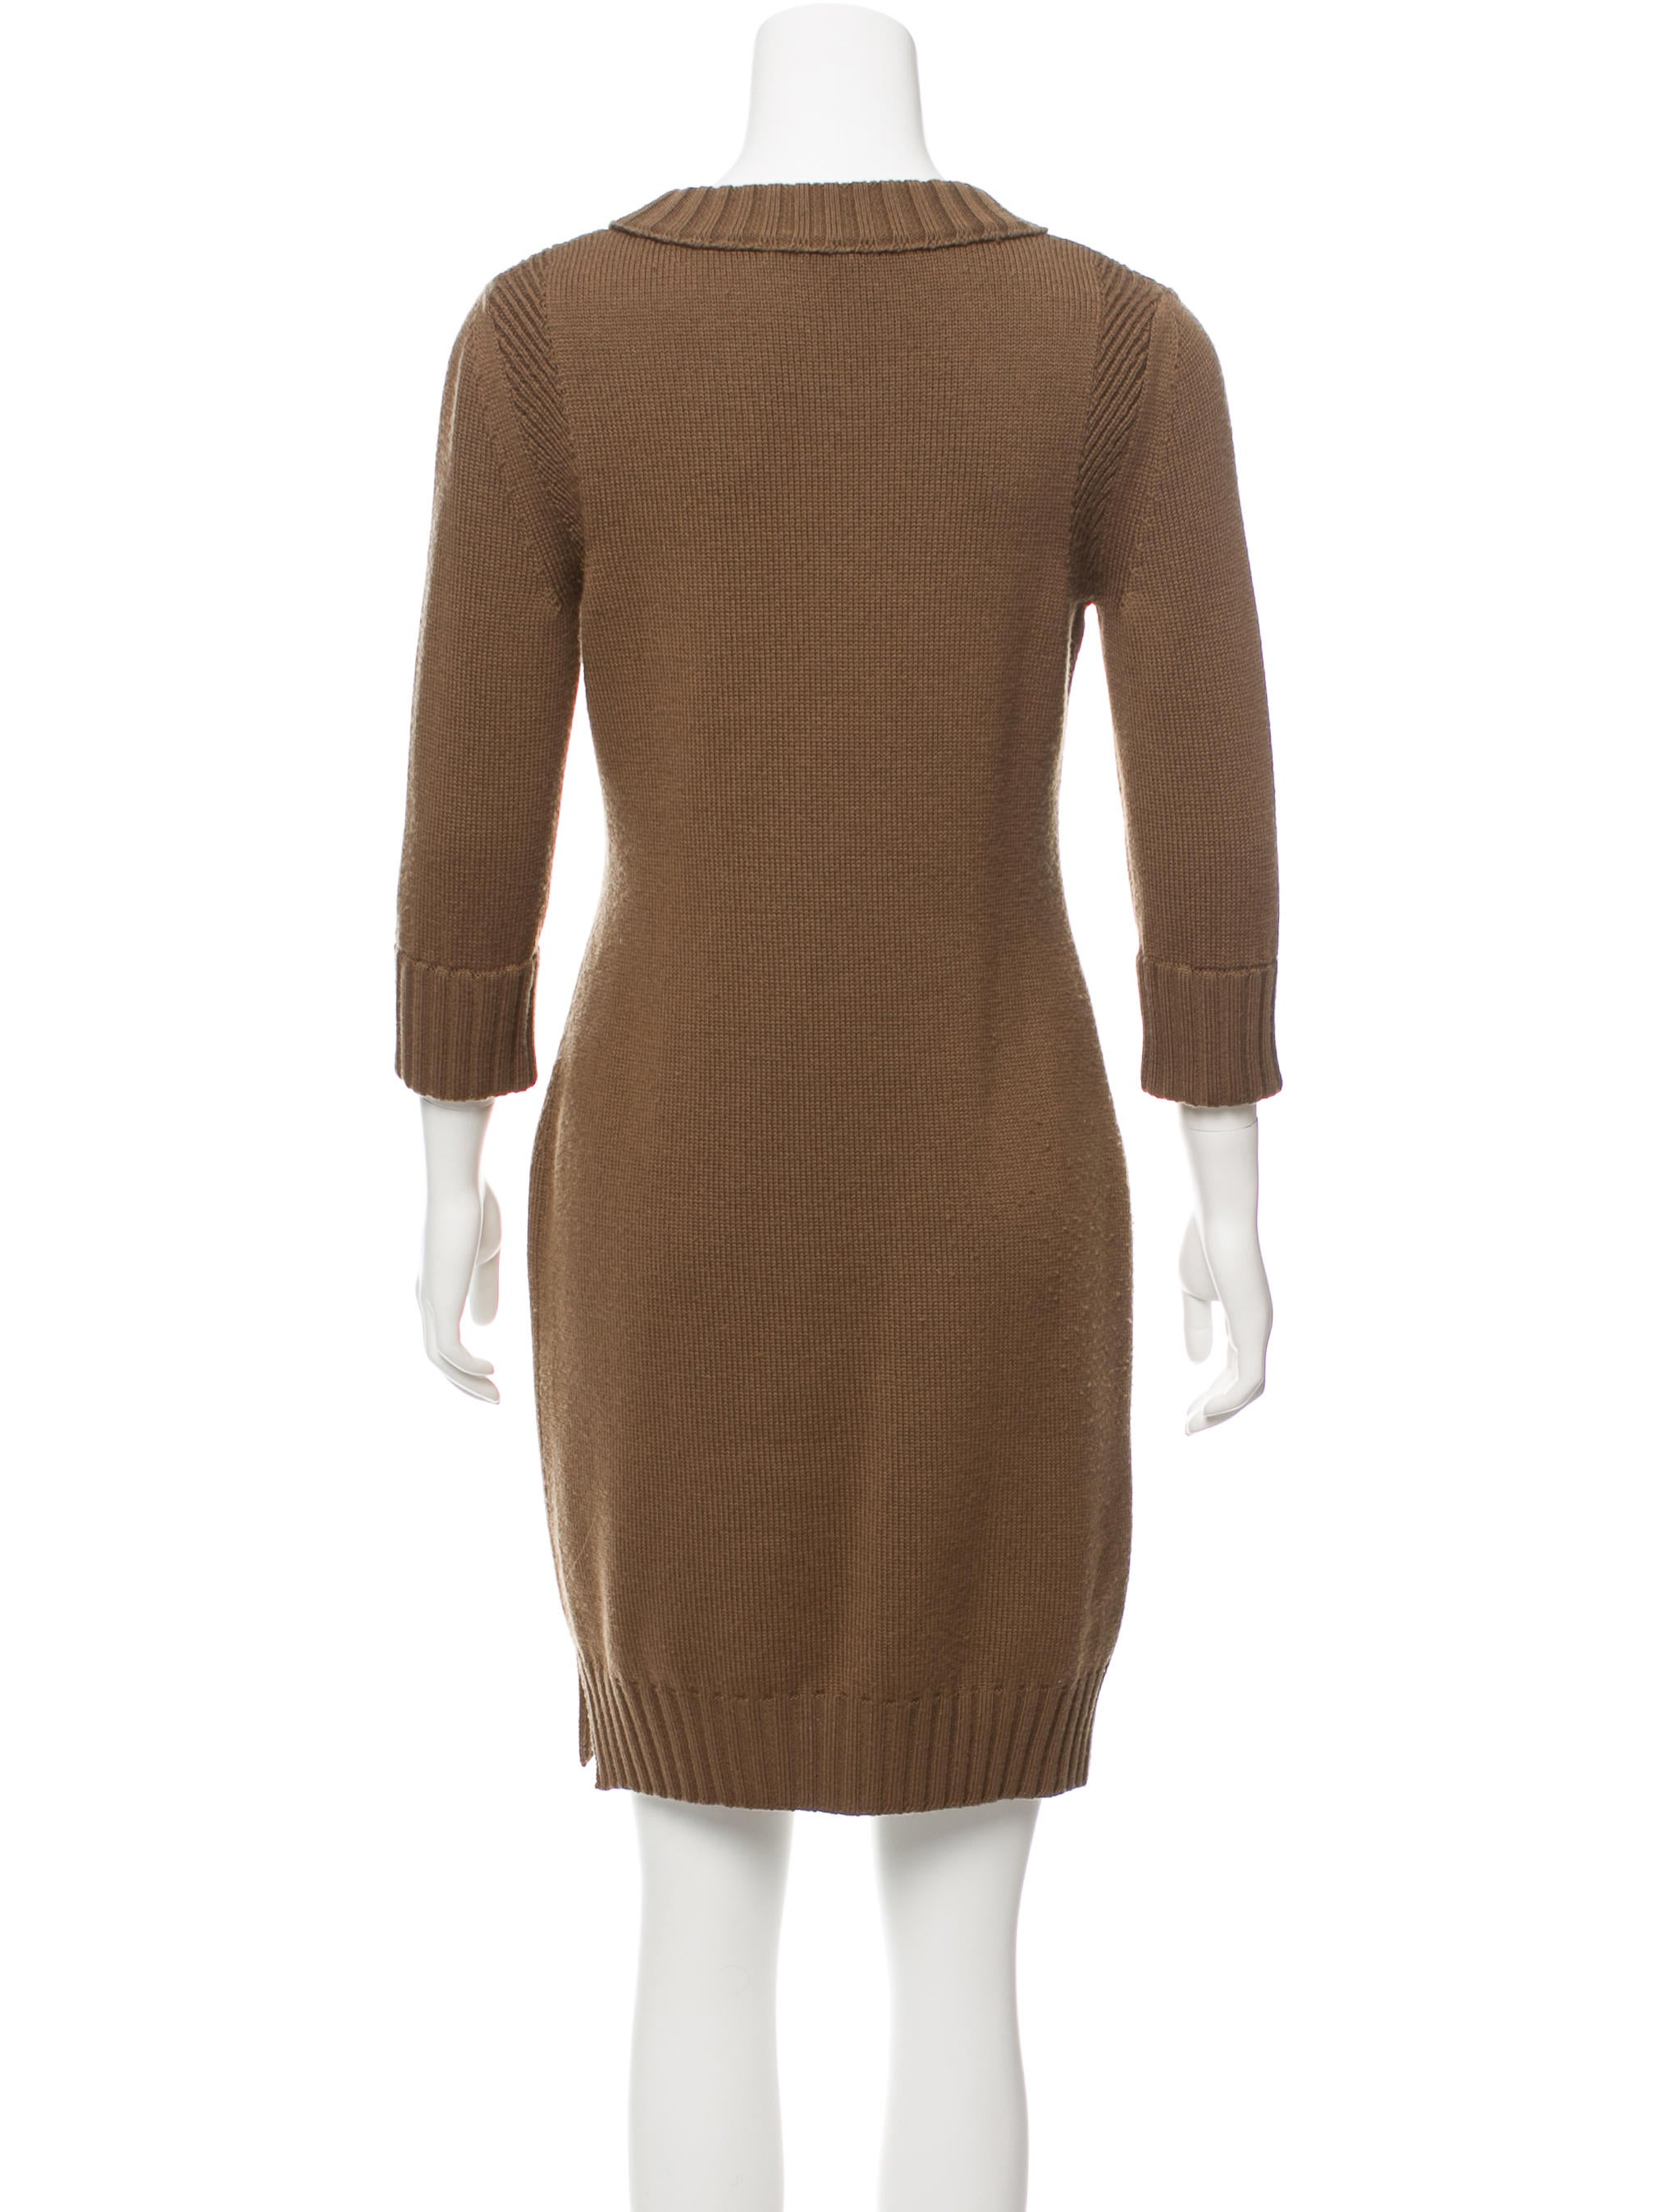 Chlou00e9 Wool Sweater Dress - Clothing - CHL64904 | The RealReal